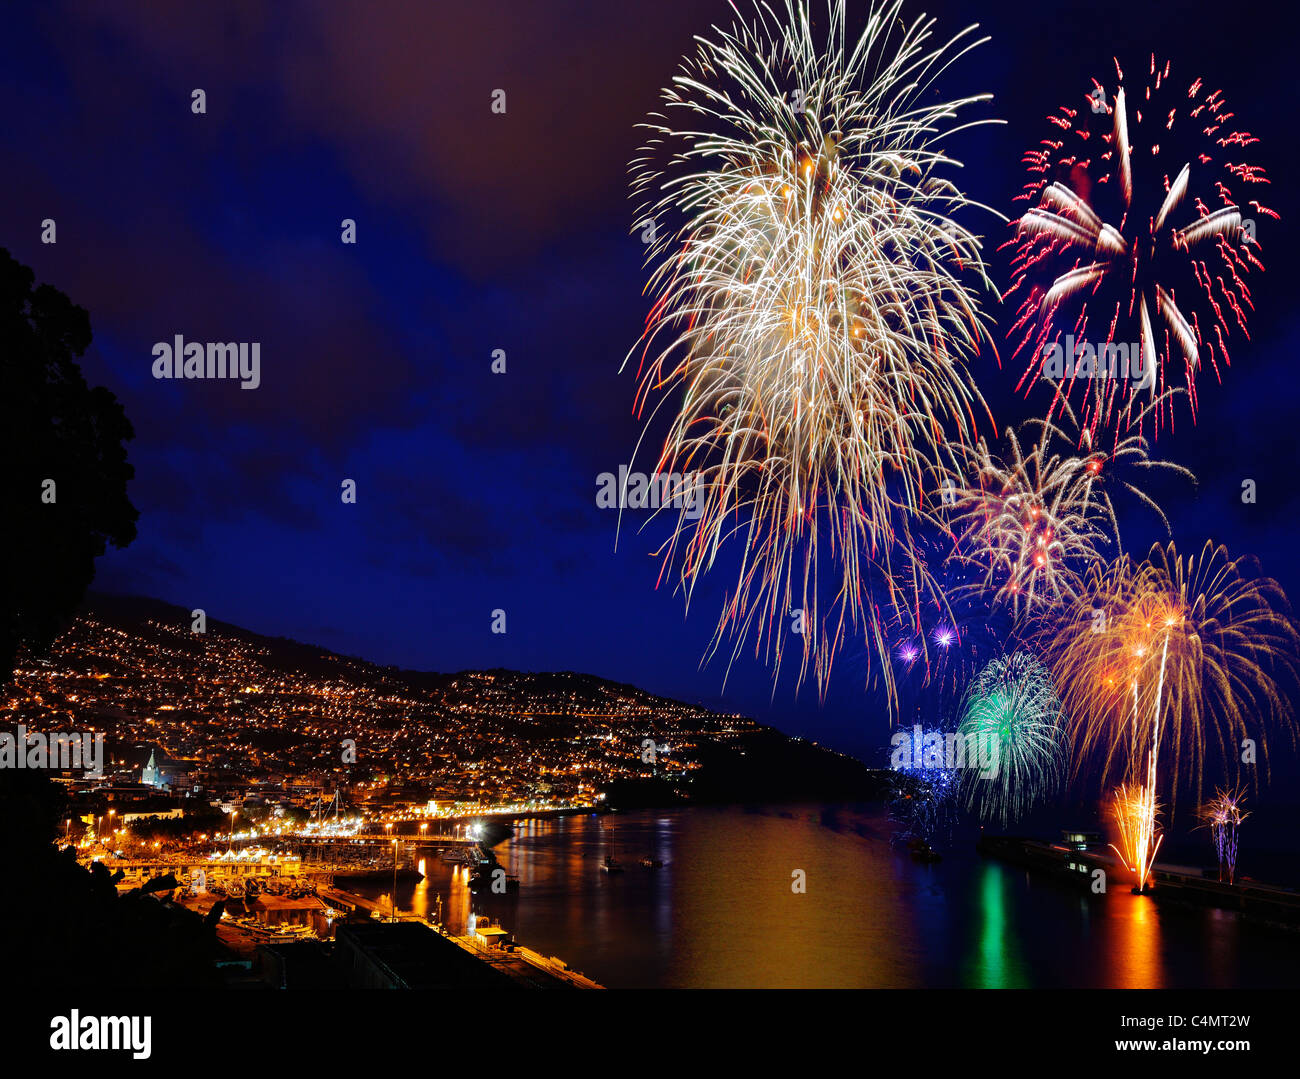 Fireworks over Funchal Harbour, Madeira. - Stock Image